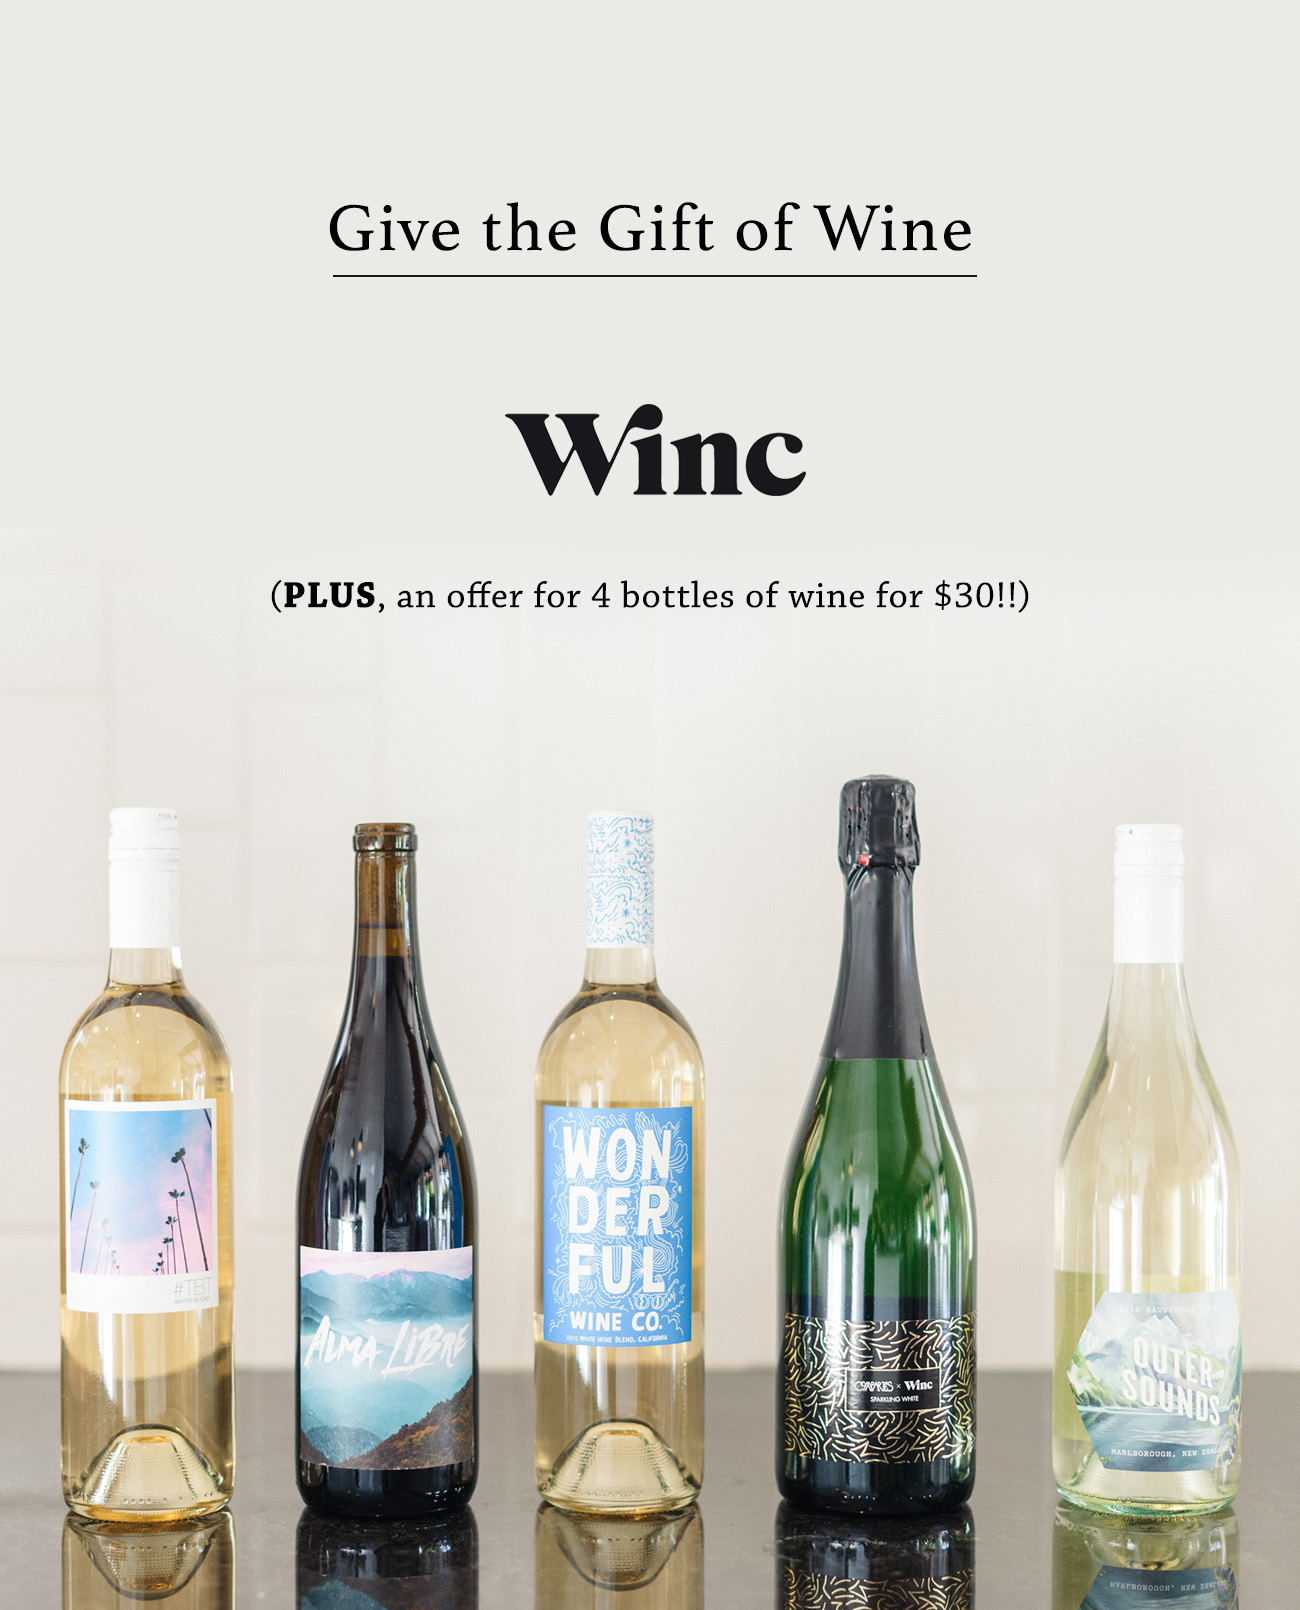 Give the gift of wine with winc